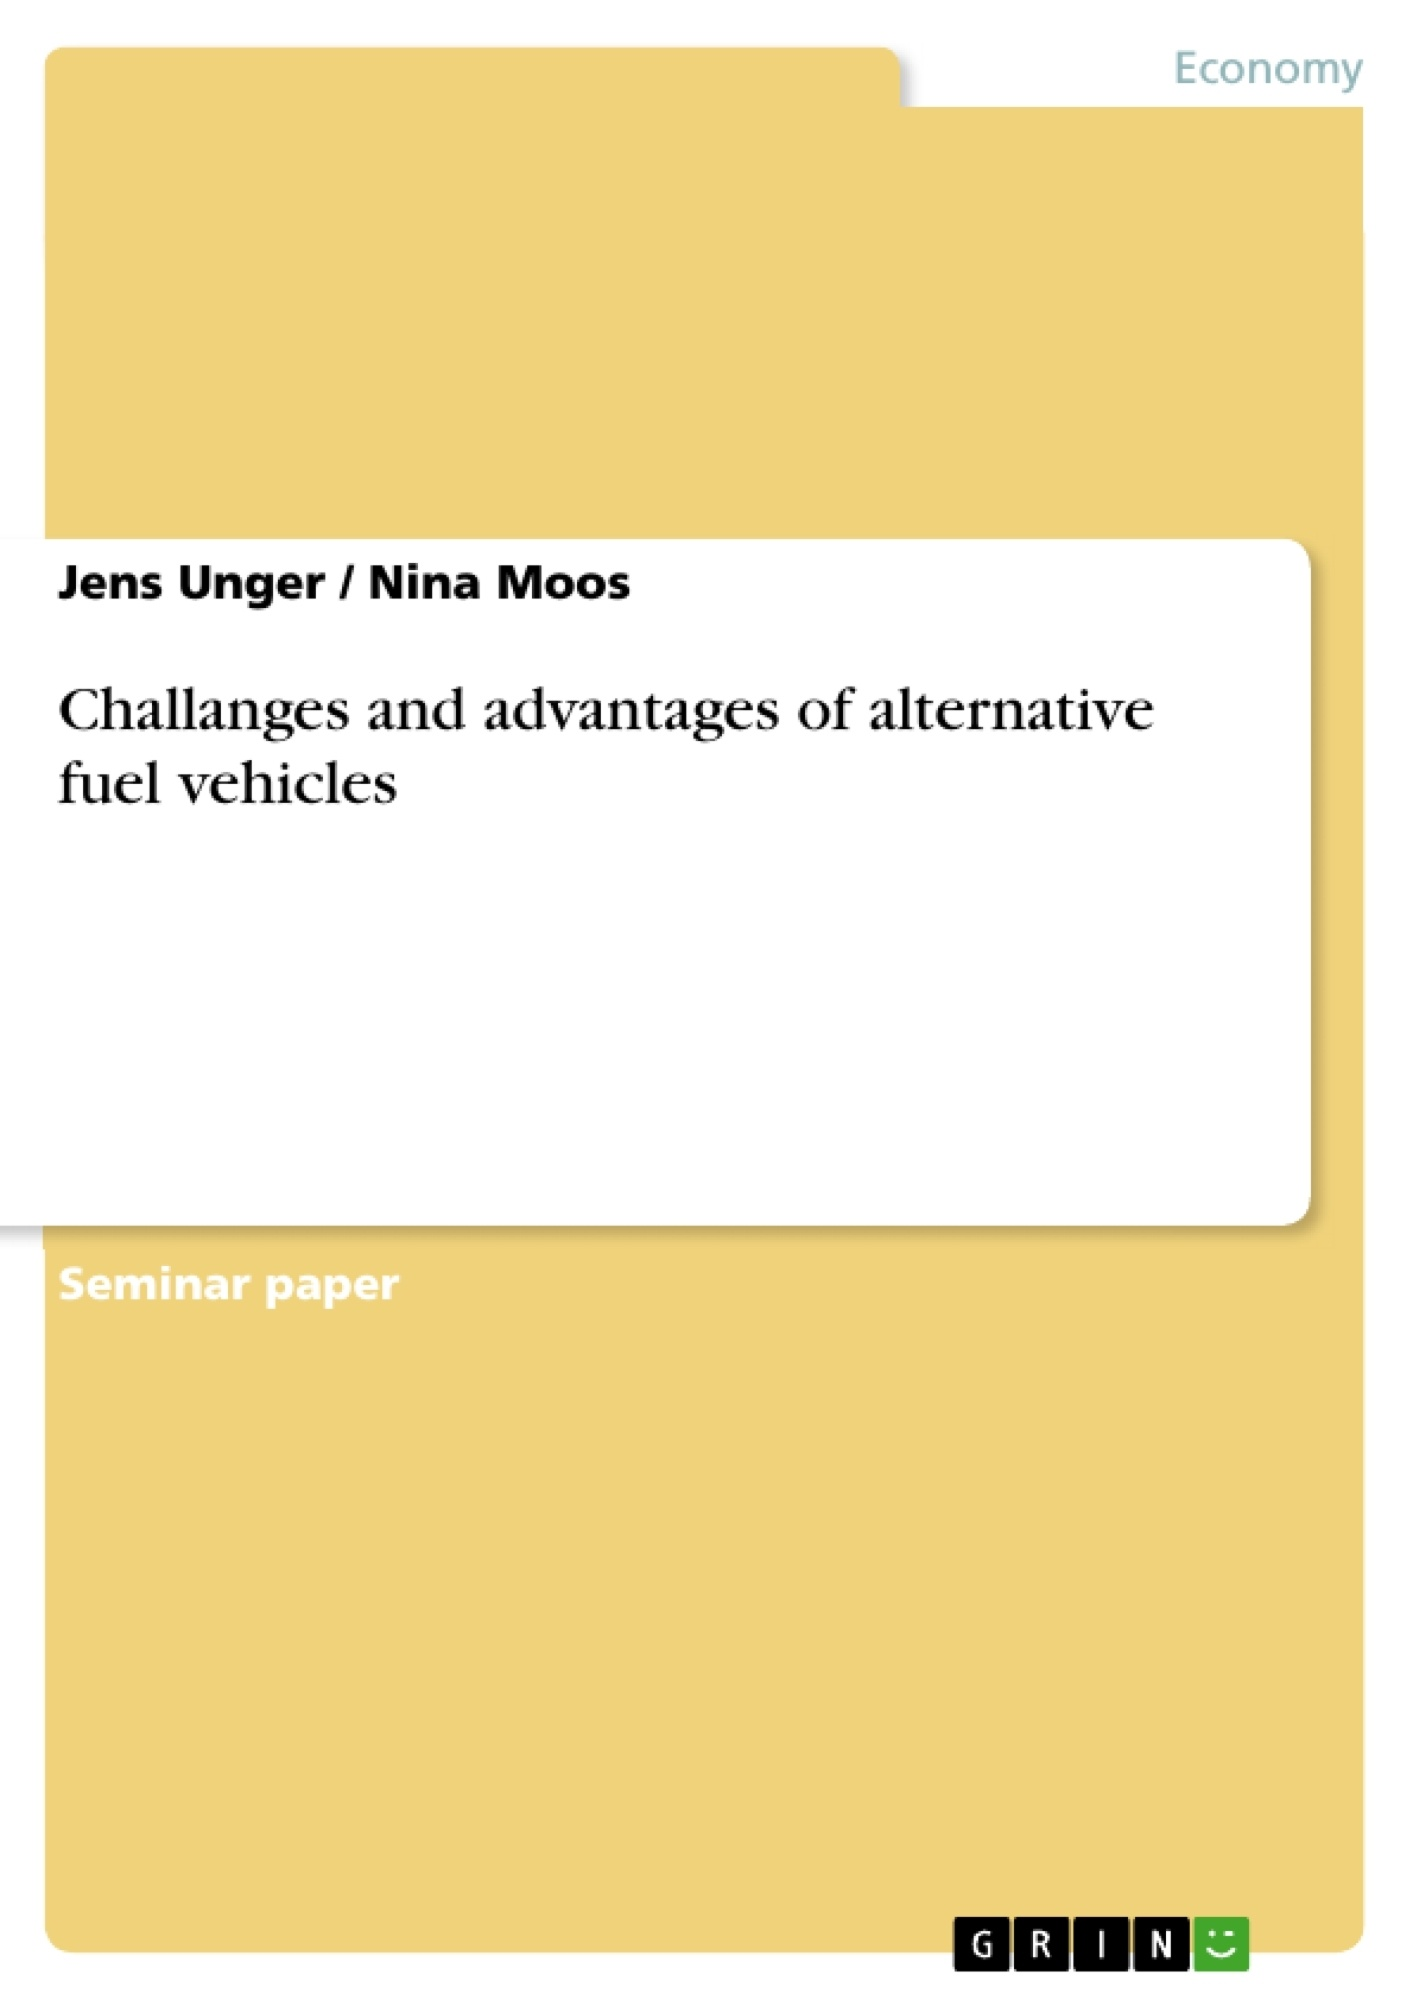 Title: Challanges and advantages of alternative fuel vehicles